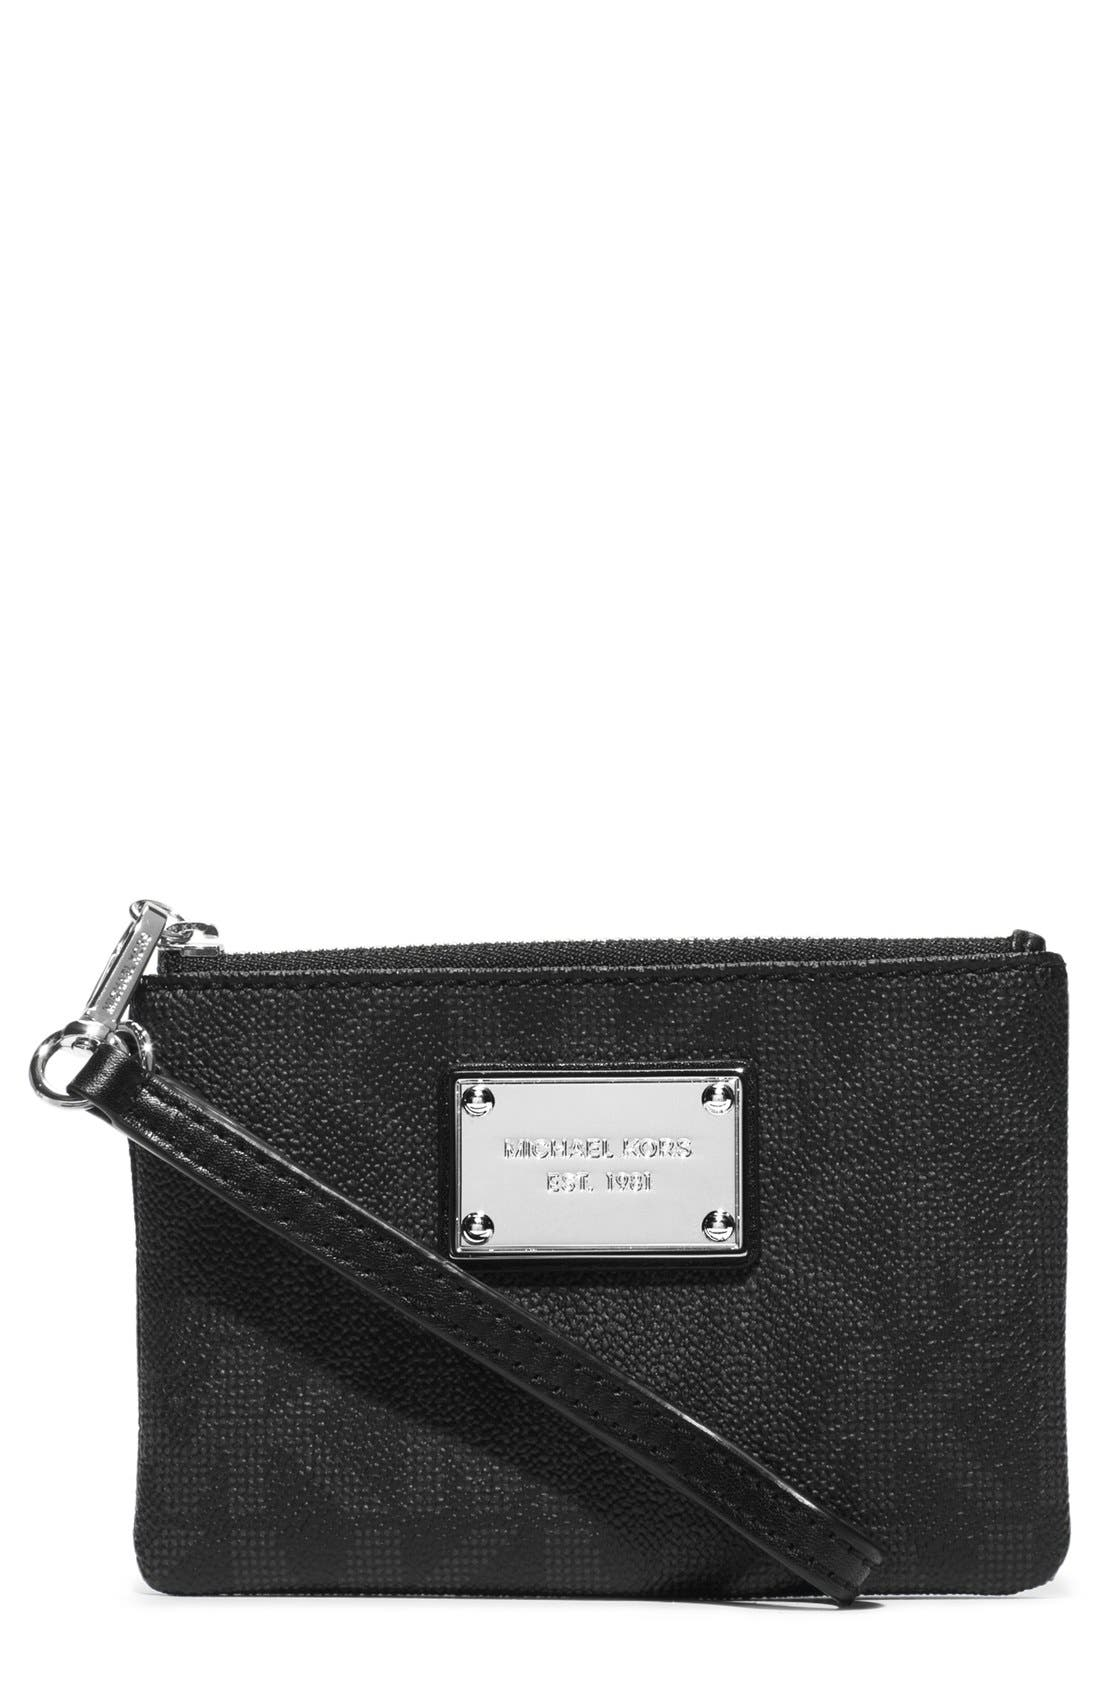 Alternate Image 1 Selected - MICHAEL Michael Kors 'Small Jet Set' Wristlet